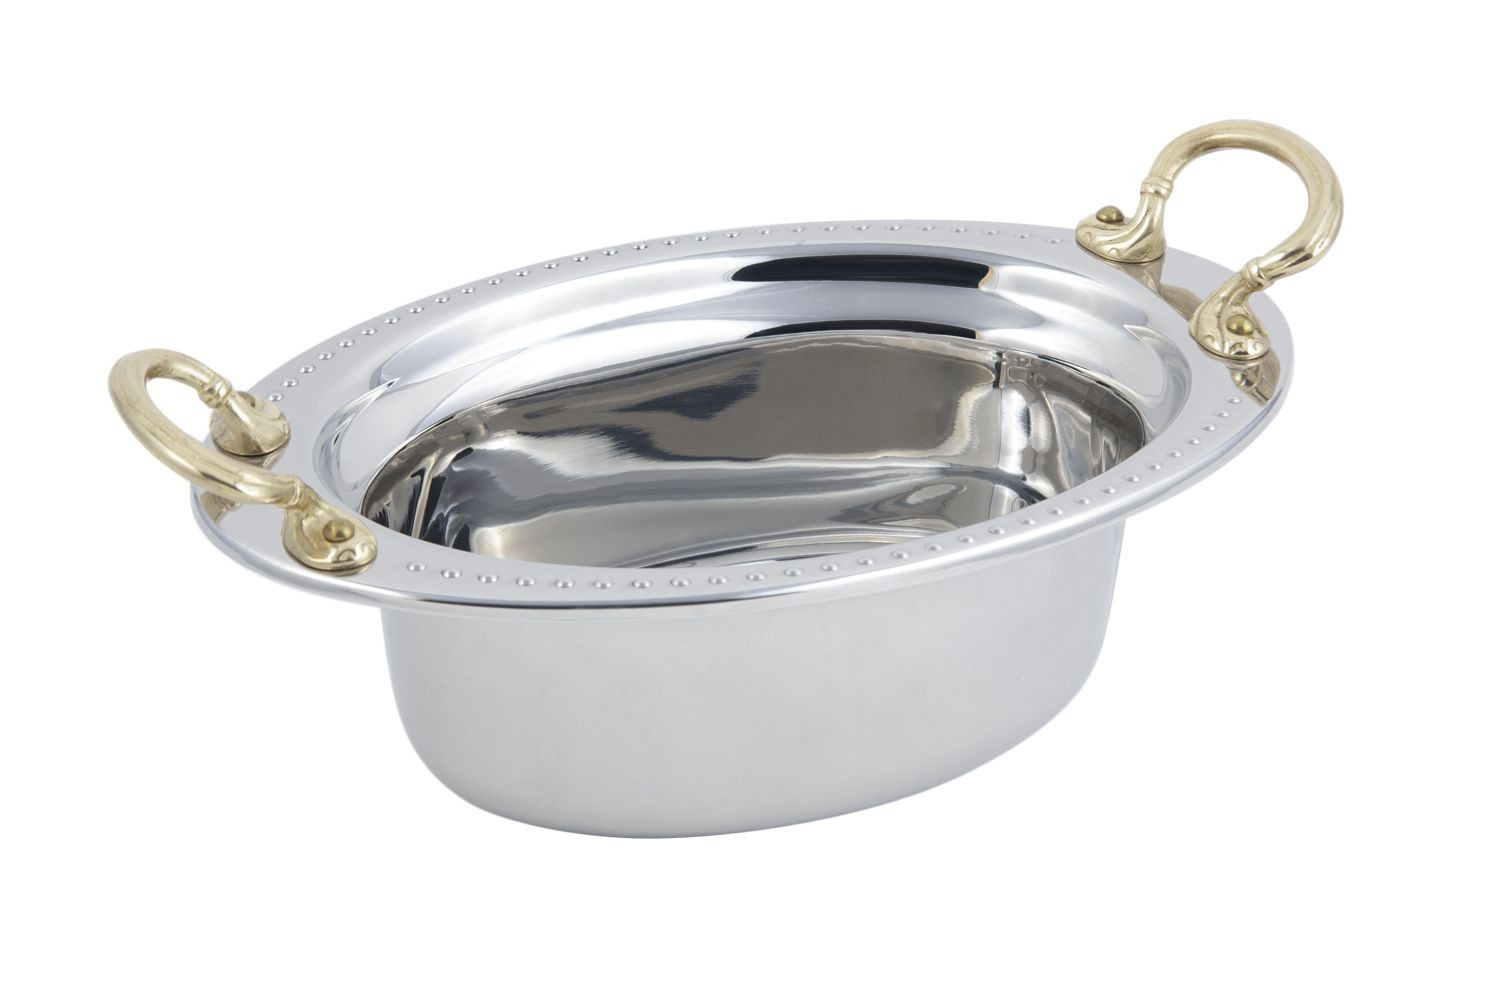 Bon Chef 5303HR Bolero Design Oval Food Pan with Round Brass Handles, 3 3/4 Qt.